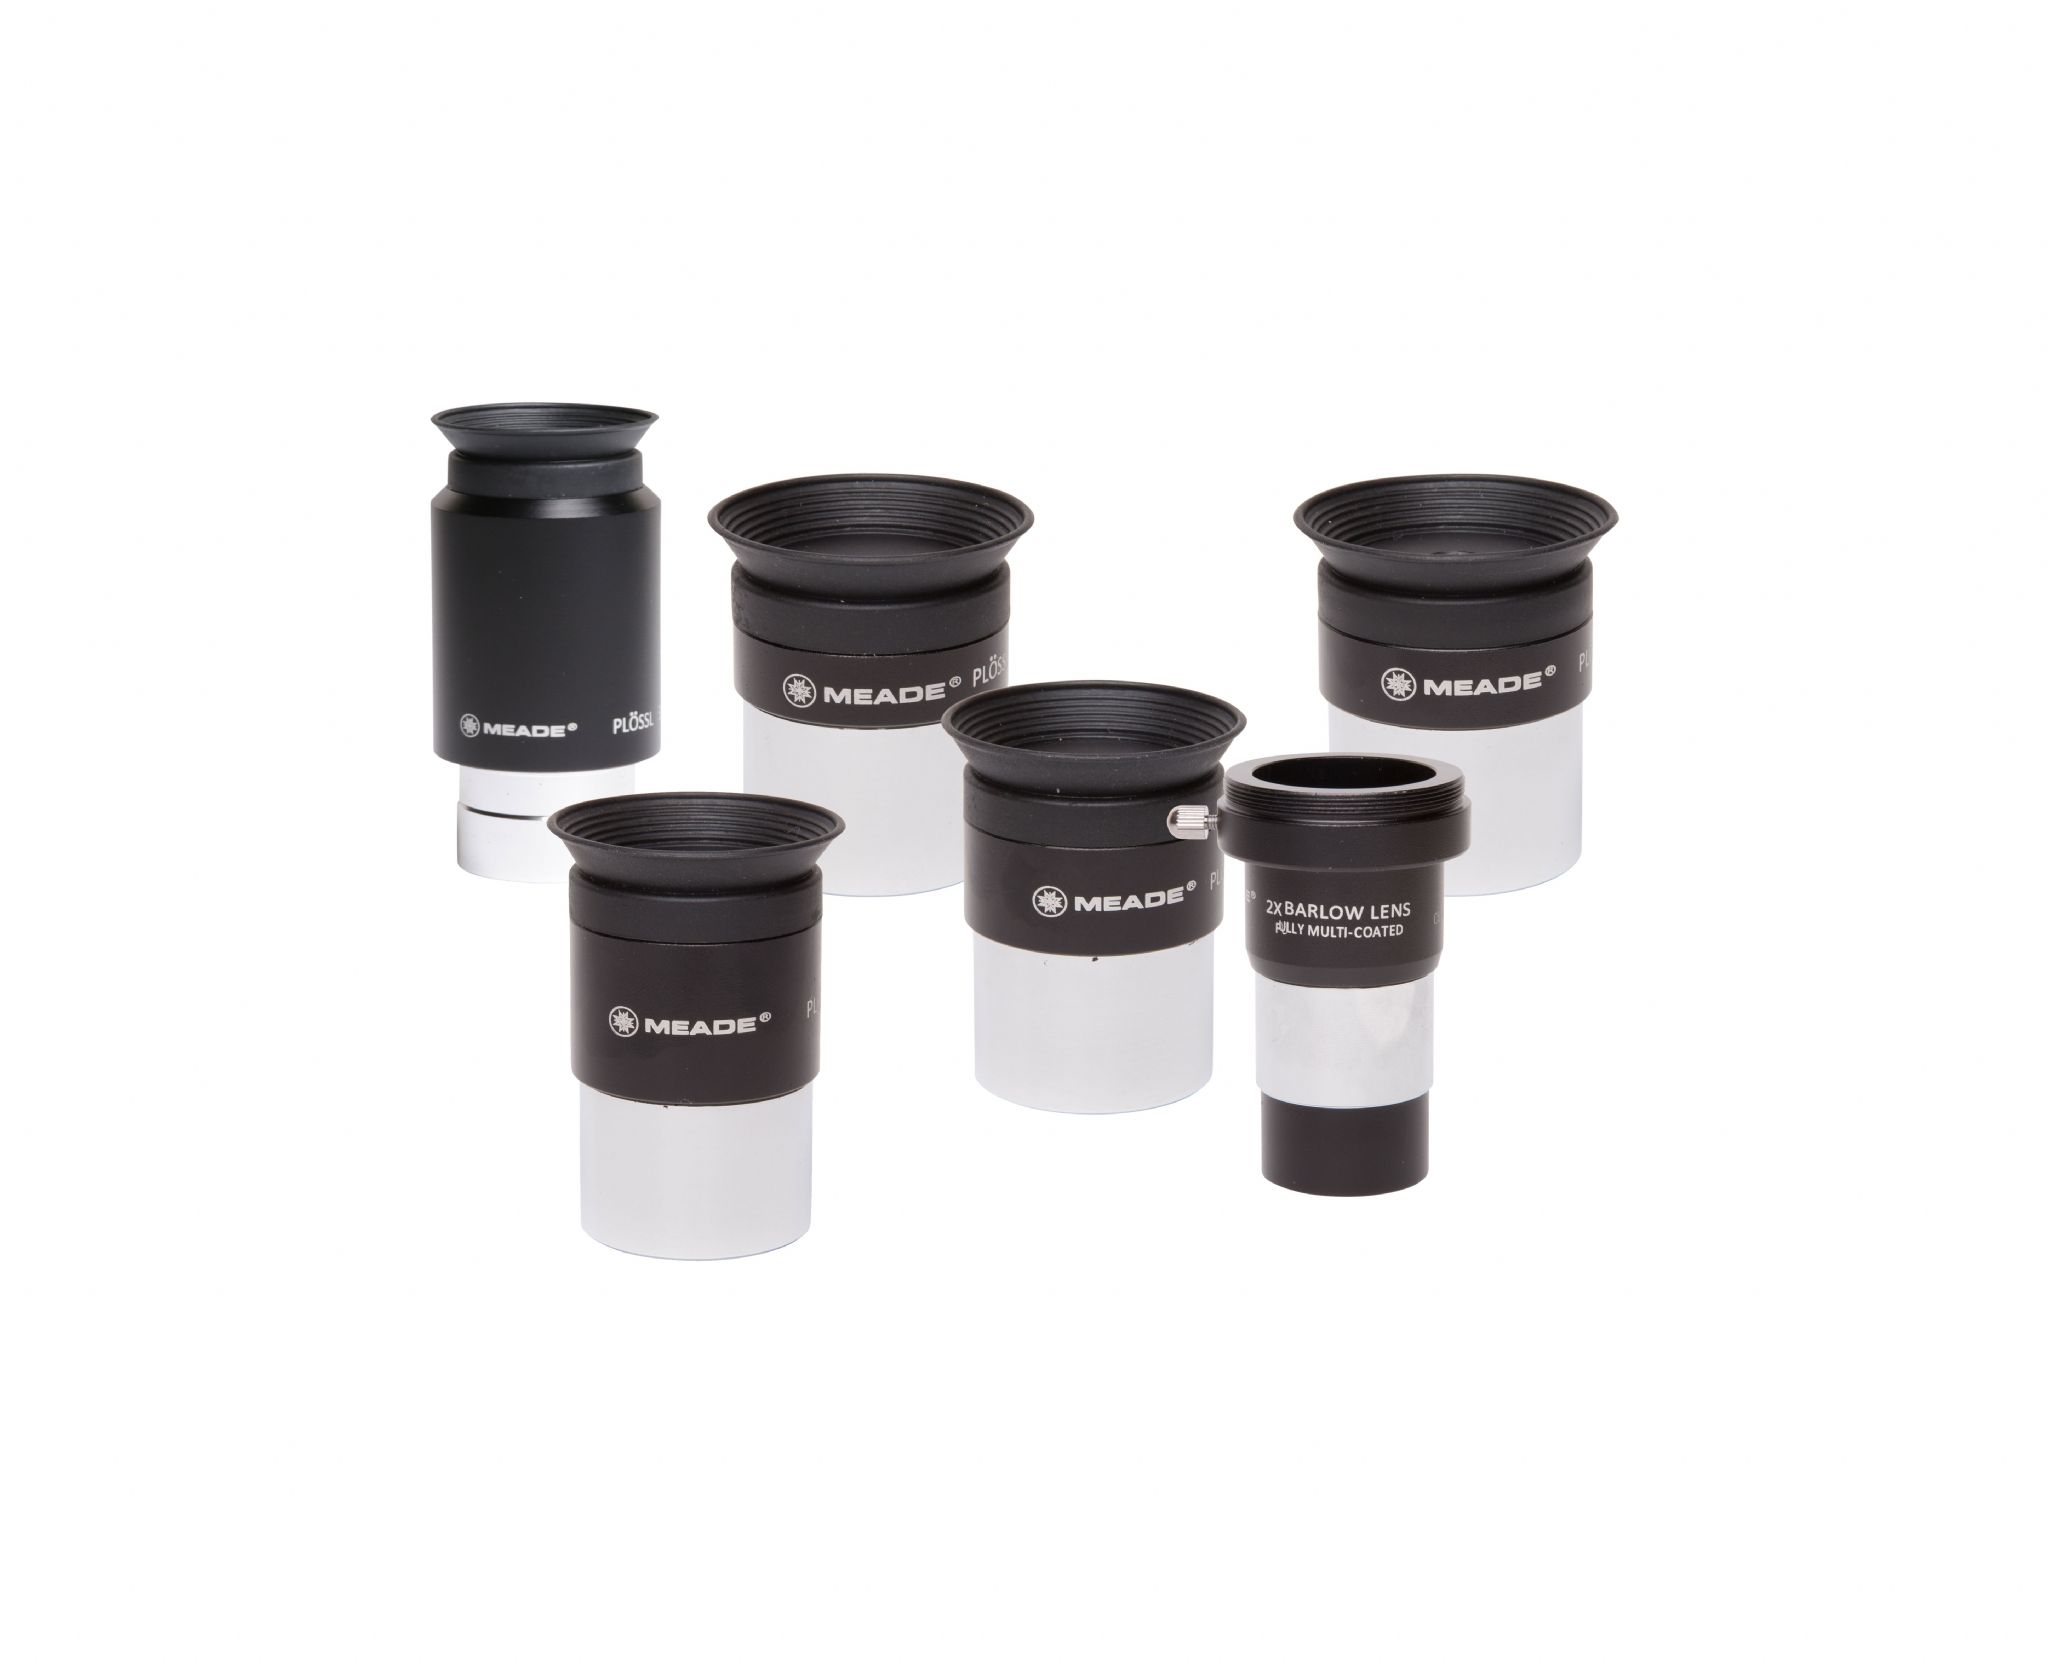 Meade Series 4000 1 25 Eyepiece And Filter Set